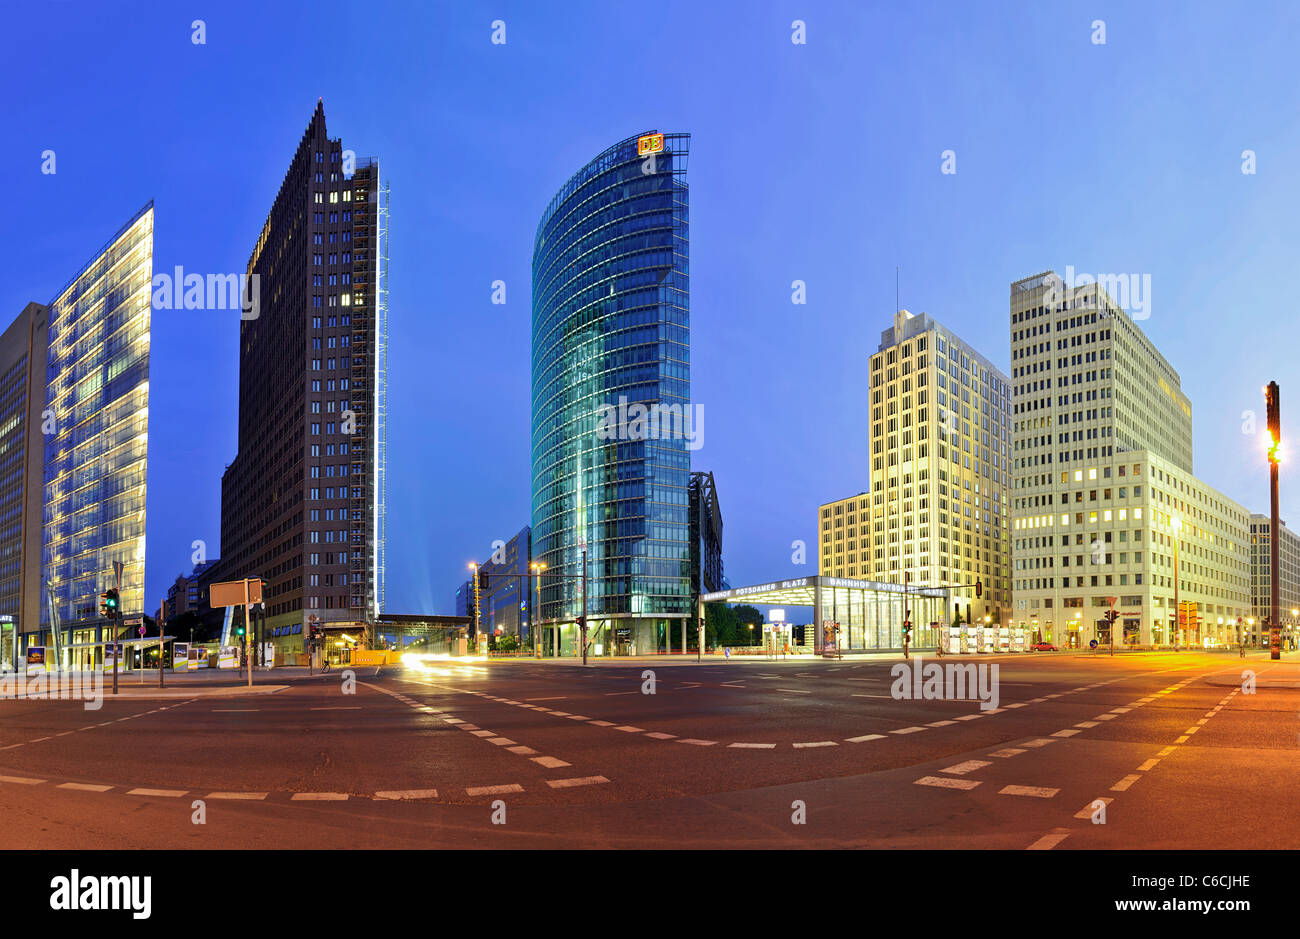 Panorama, Potsdamer Platz square, in the early morning twilight, Mitte district, Berlin, Germany, Europe - Stock Image